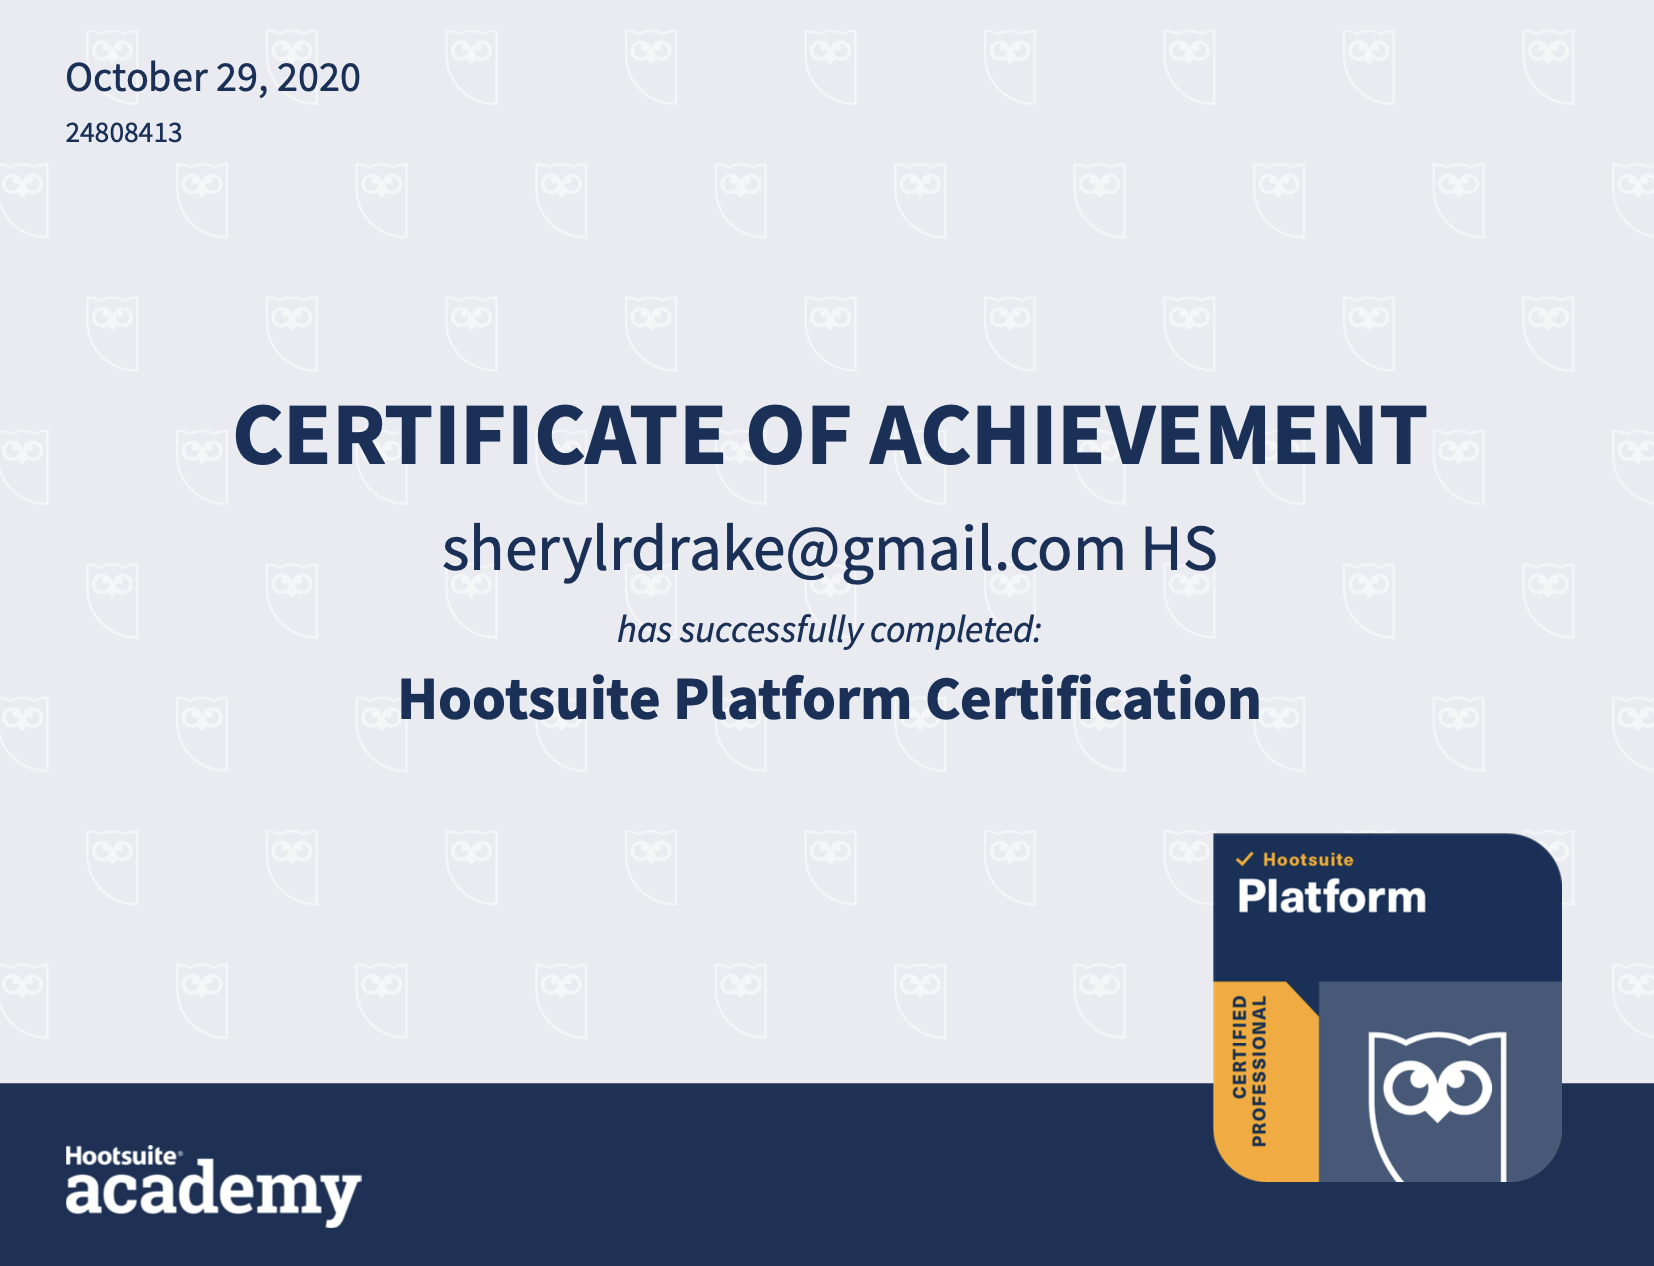 Sheryl's Hootsuite Certification